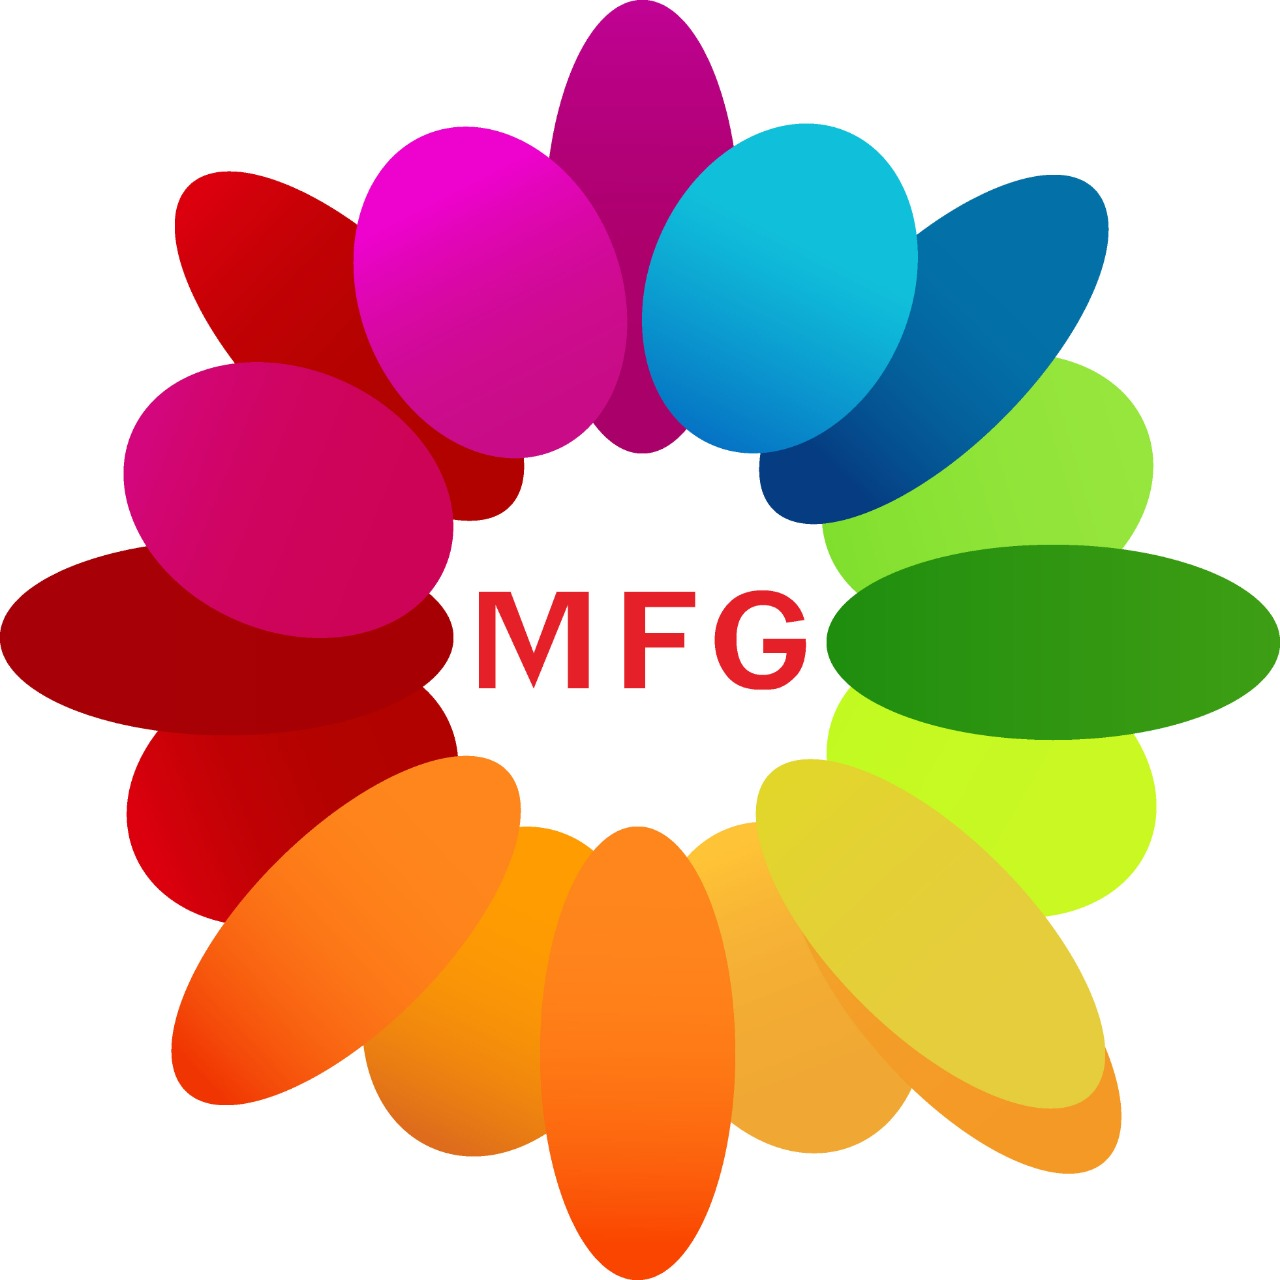 love on the moon ....beautiful designer arrangement in shape of moon can be the best gift to wish your loved one at the beginning of the day